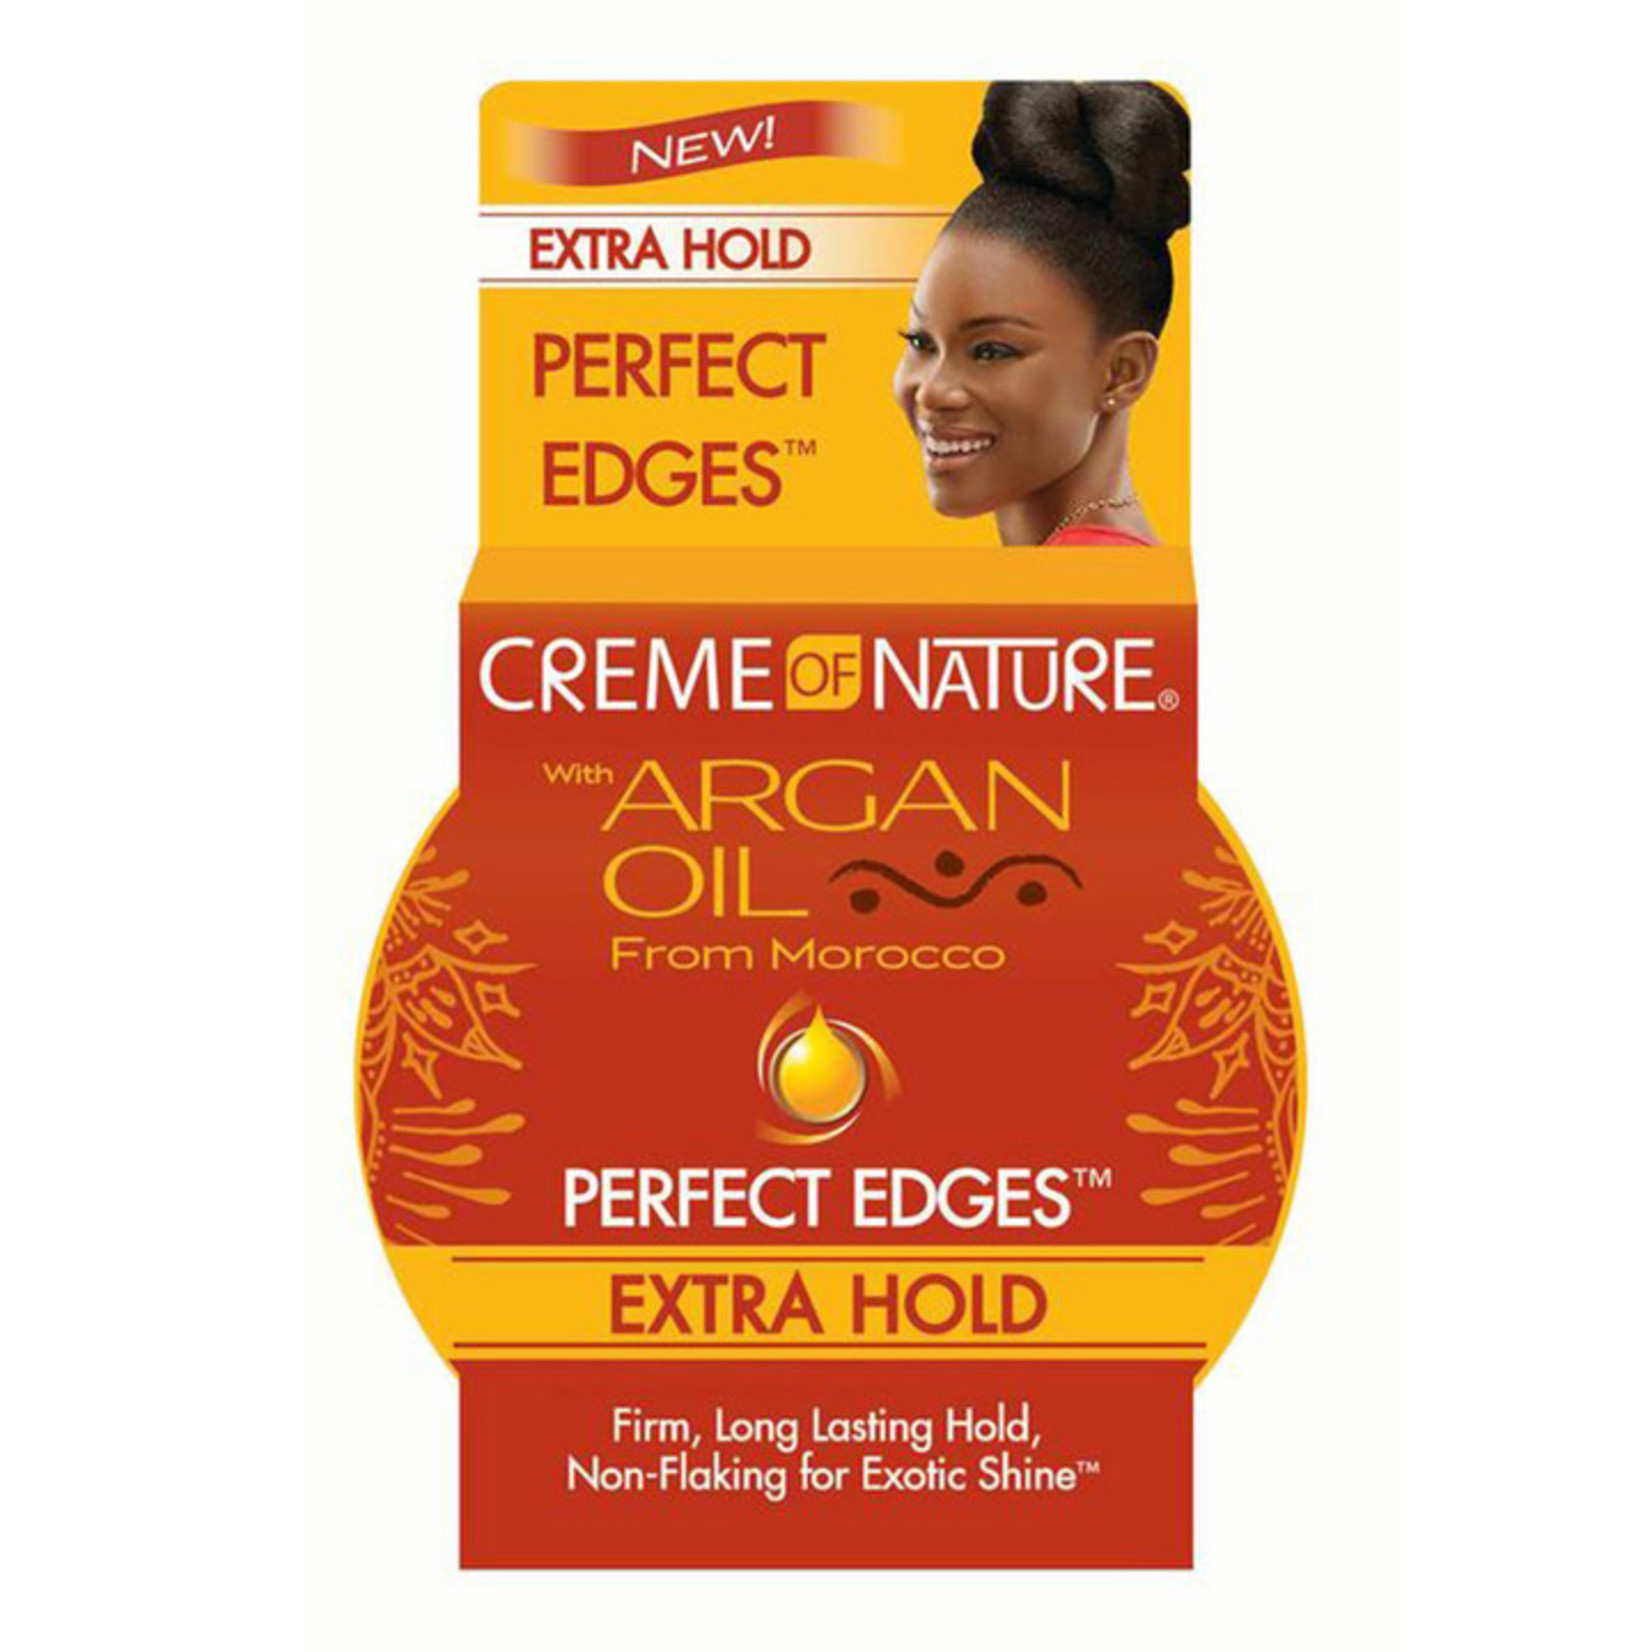 CREME OF NATURE CREME OF NATURE ARGAN OIL PERFECT EDGES  - EXTRA HOLD [2.25]